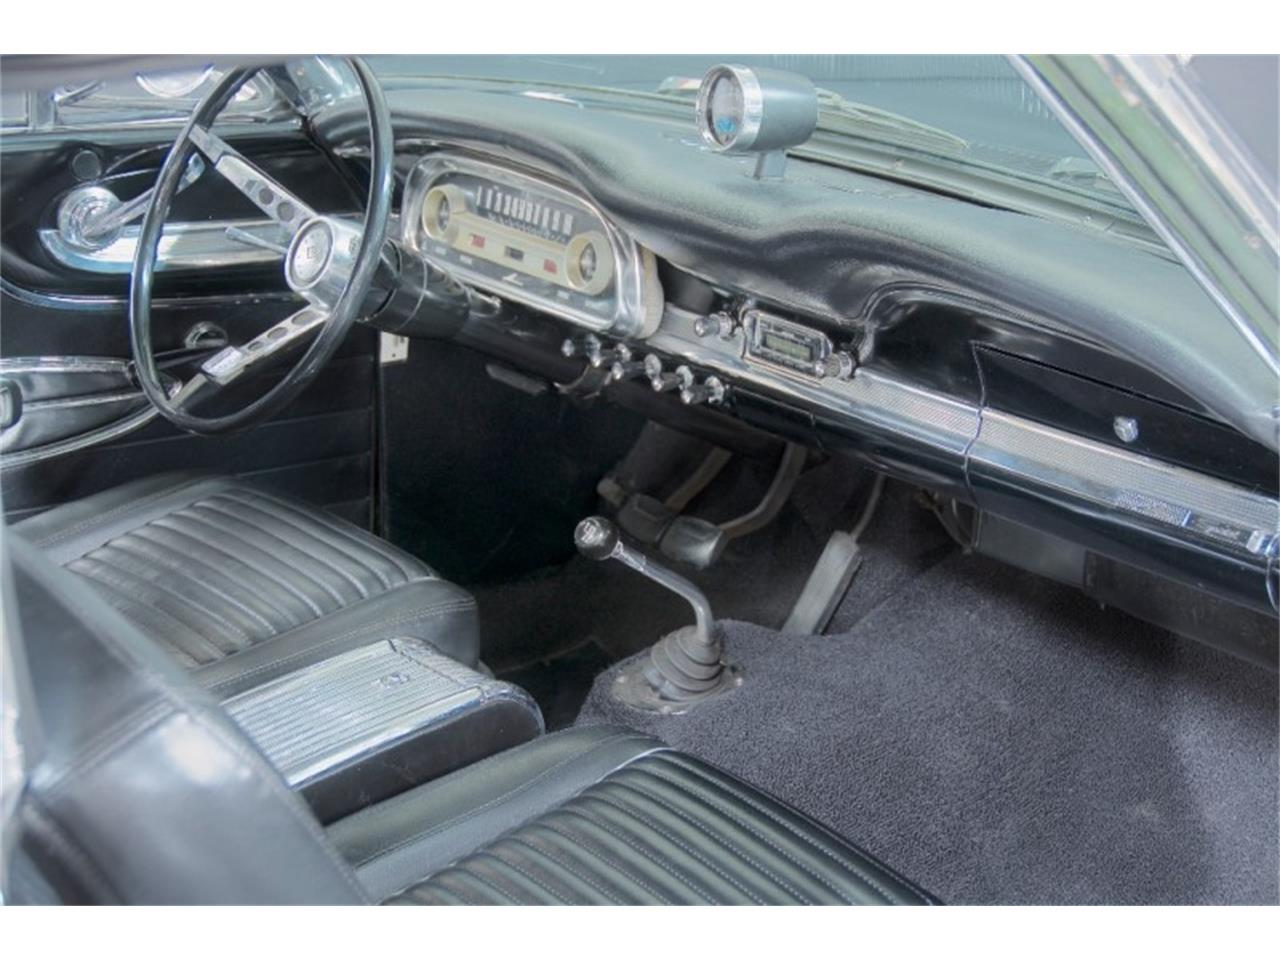 1963 Ford Falcon for sale in Milpitas, CA – photo 68